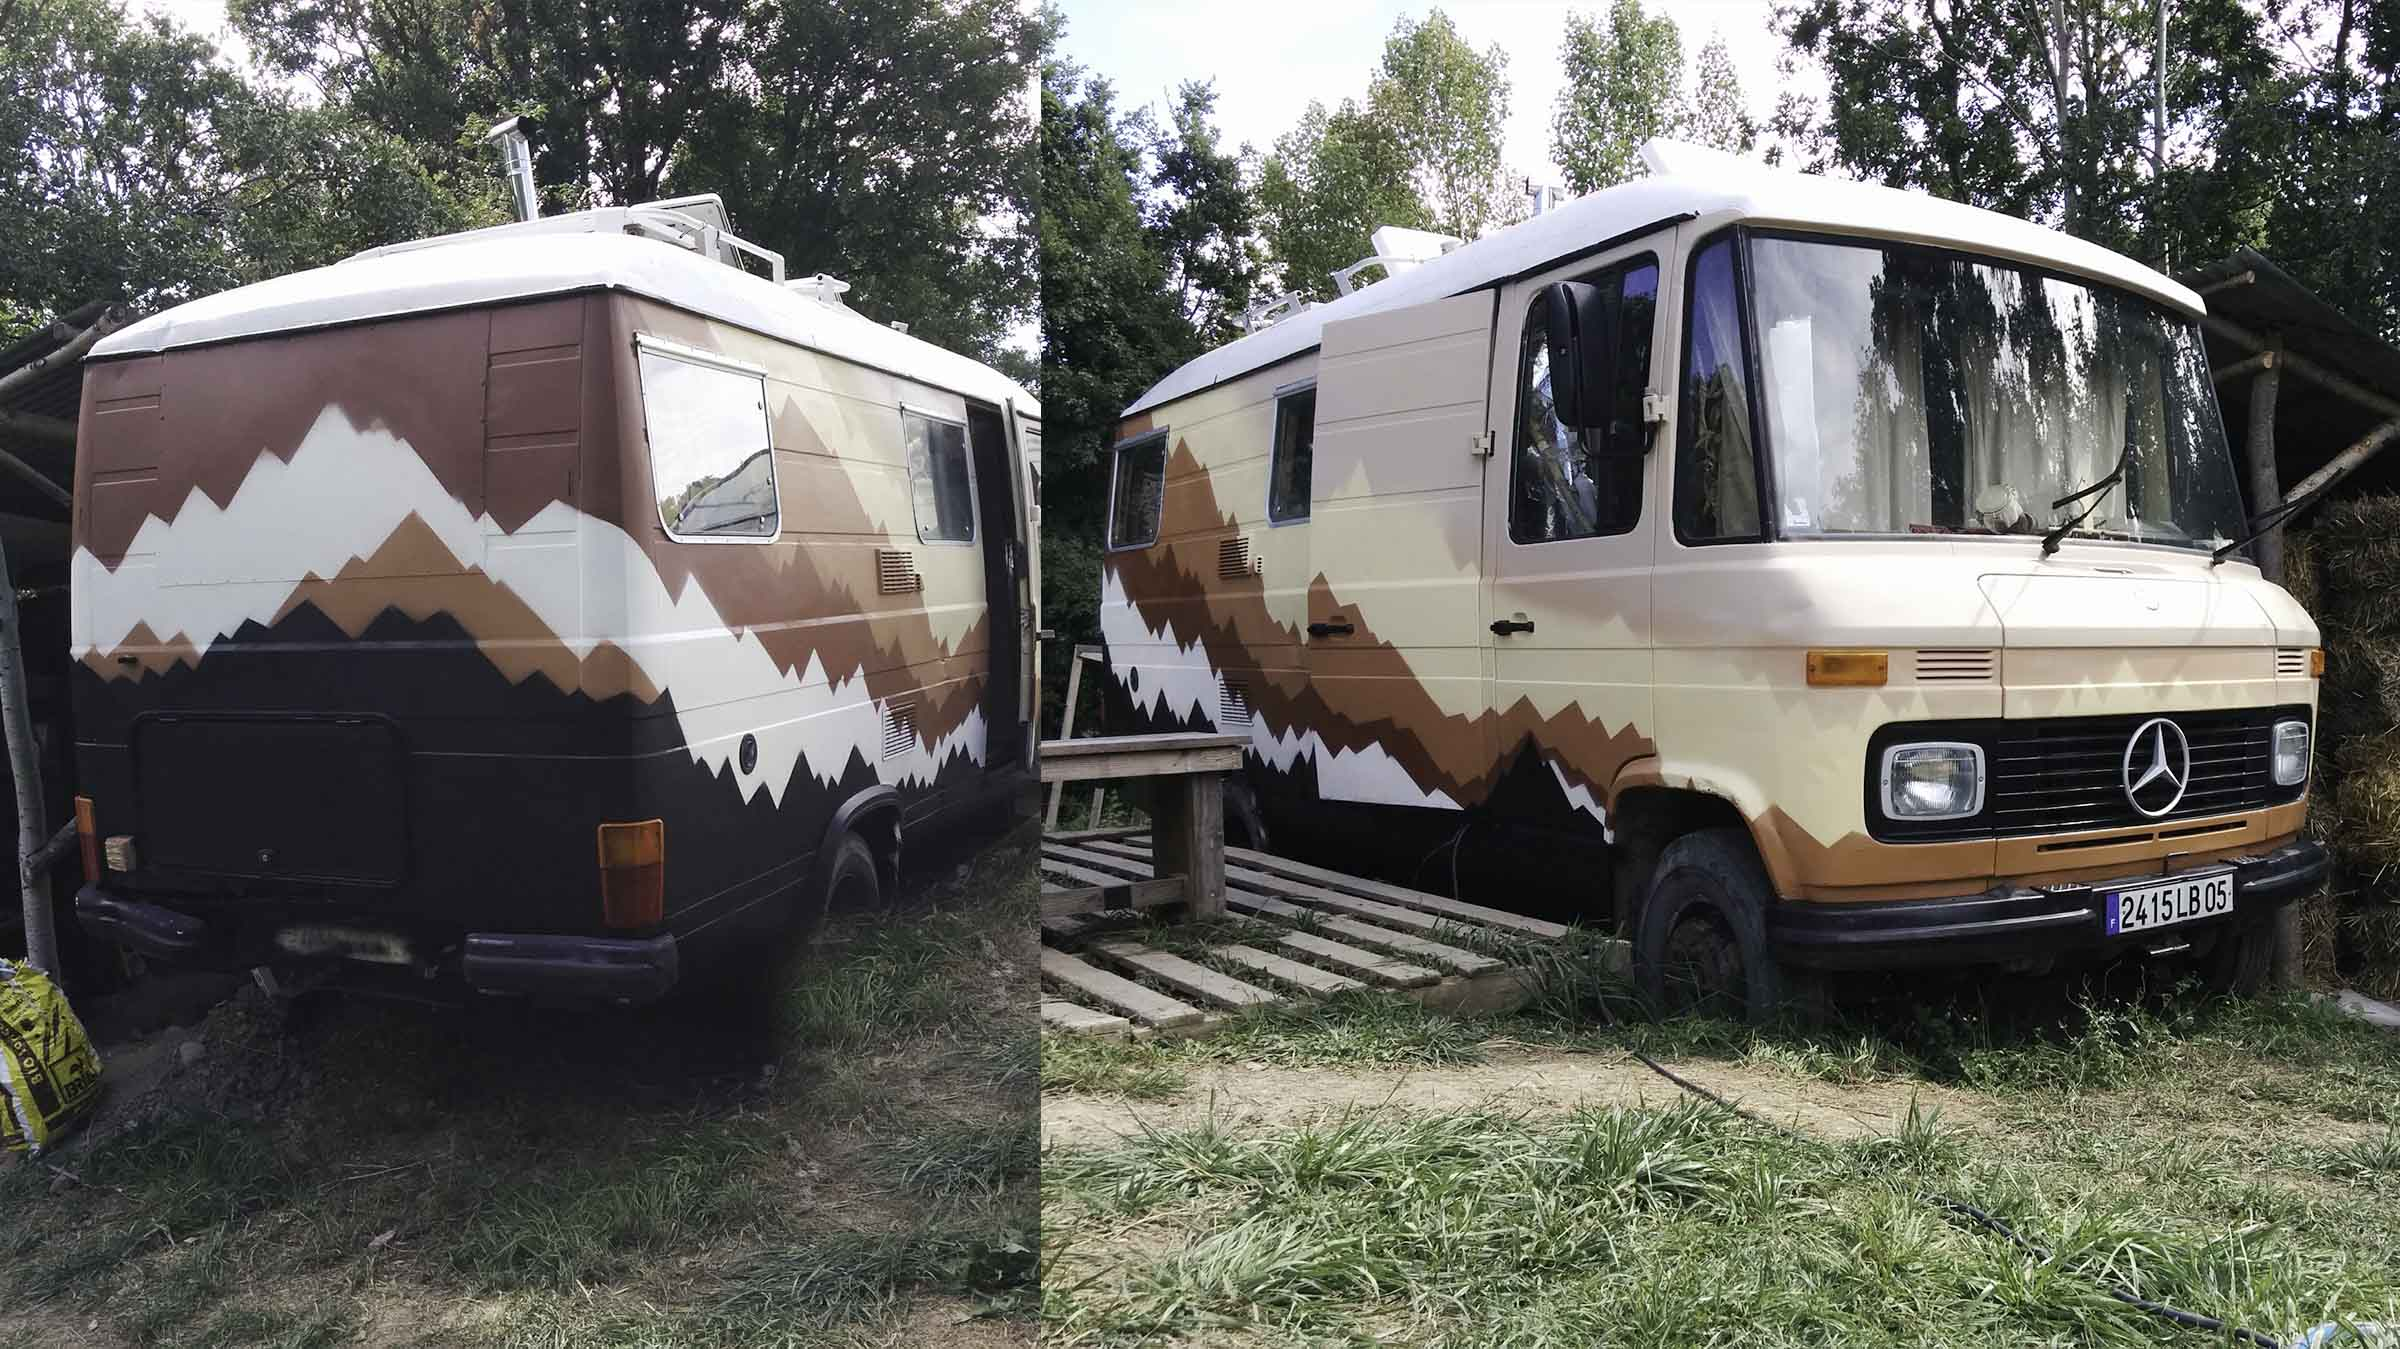 Street art van decovan